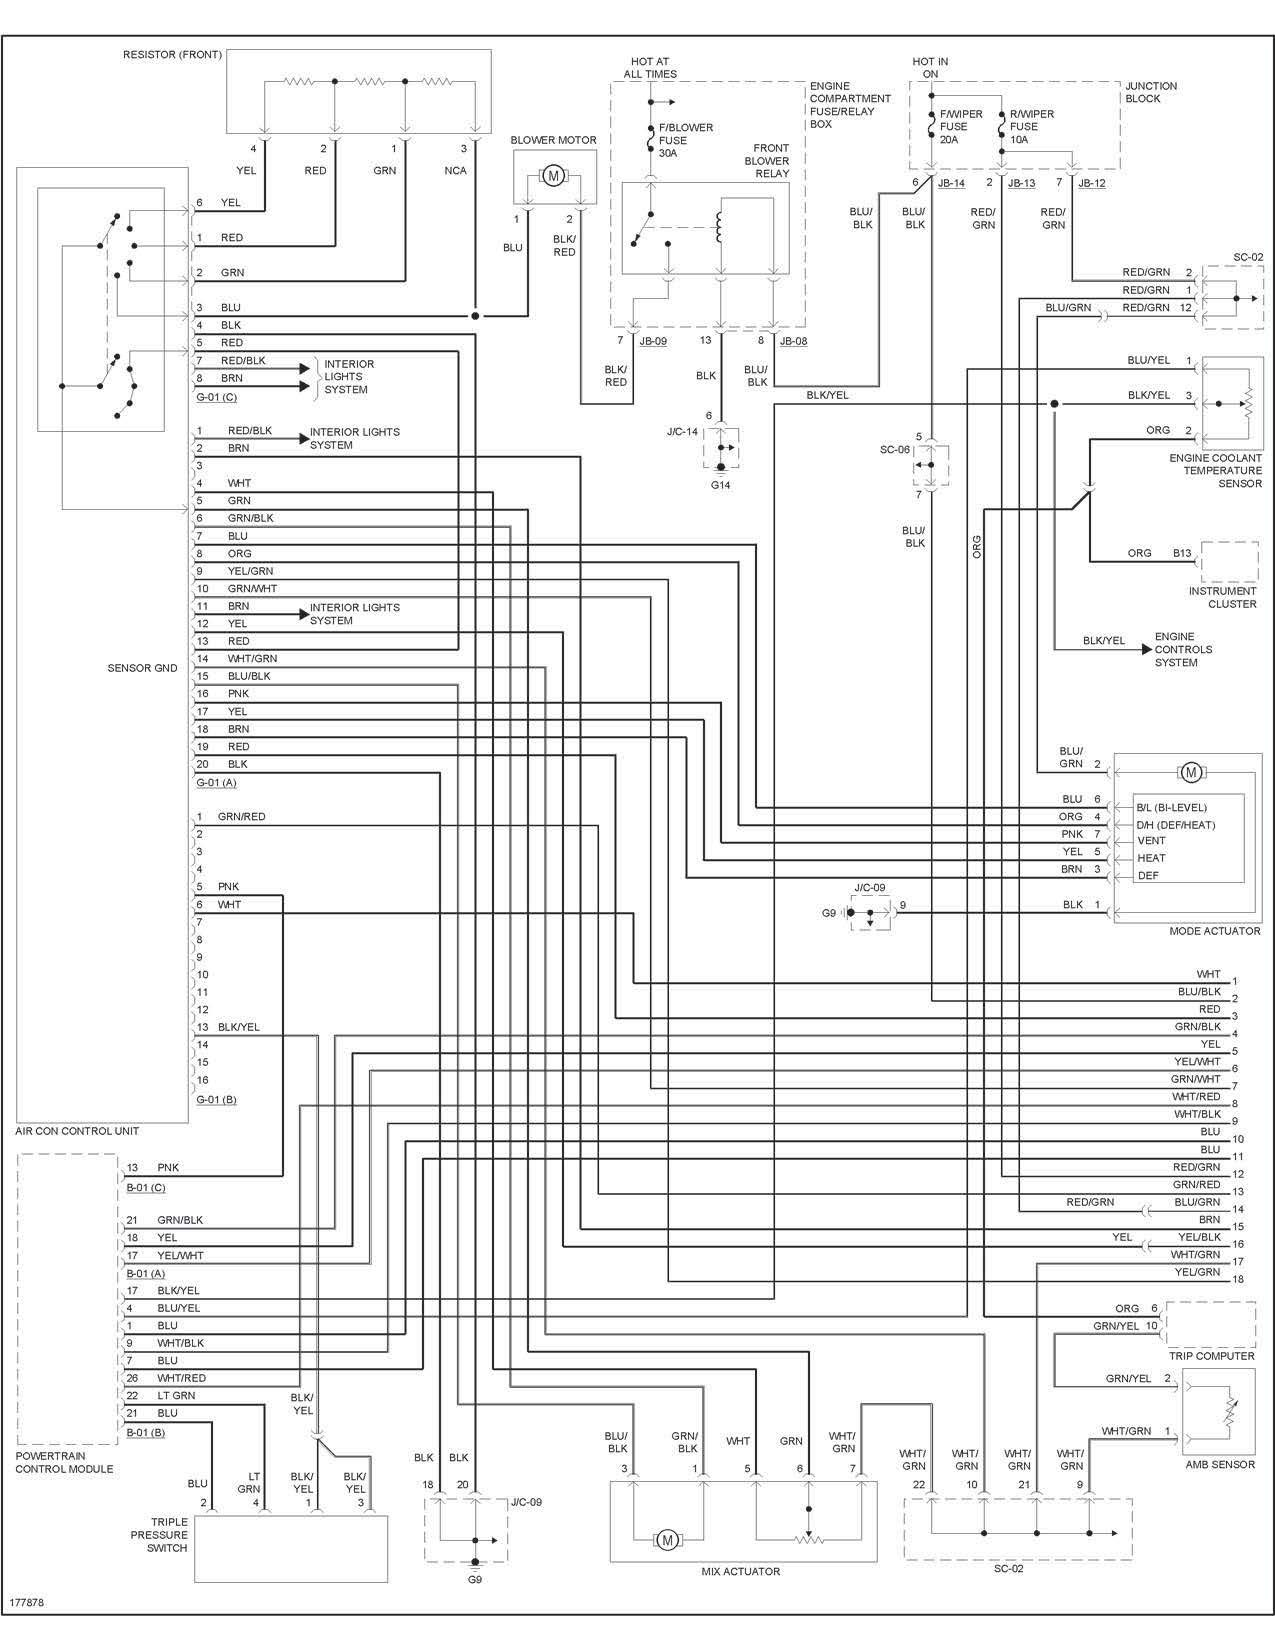 2008 kia sedona wiring diagram free download diagram base website ...  diagram database site full edition - unlimited full edition ...